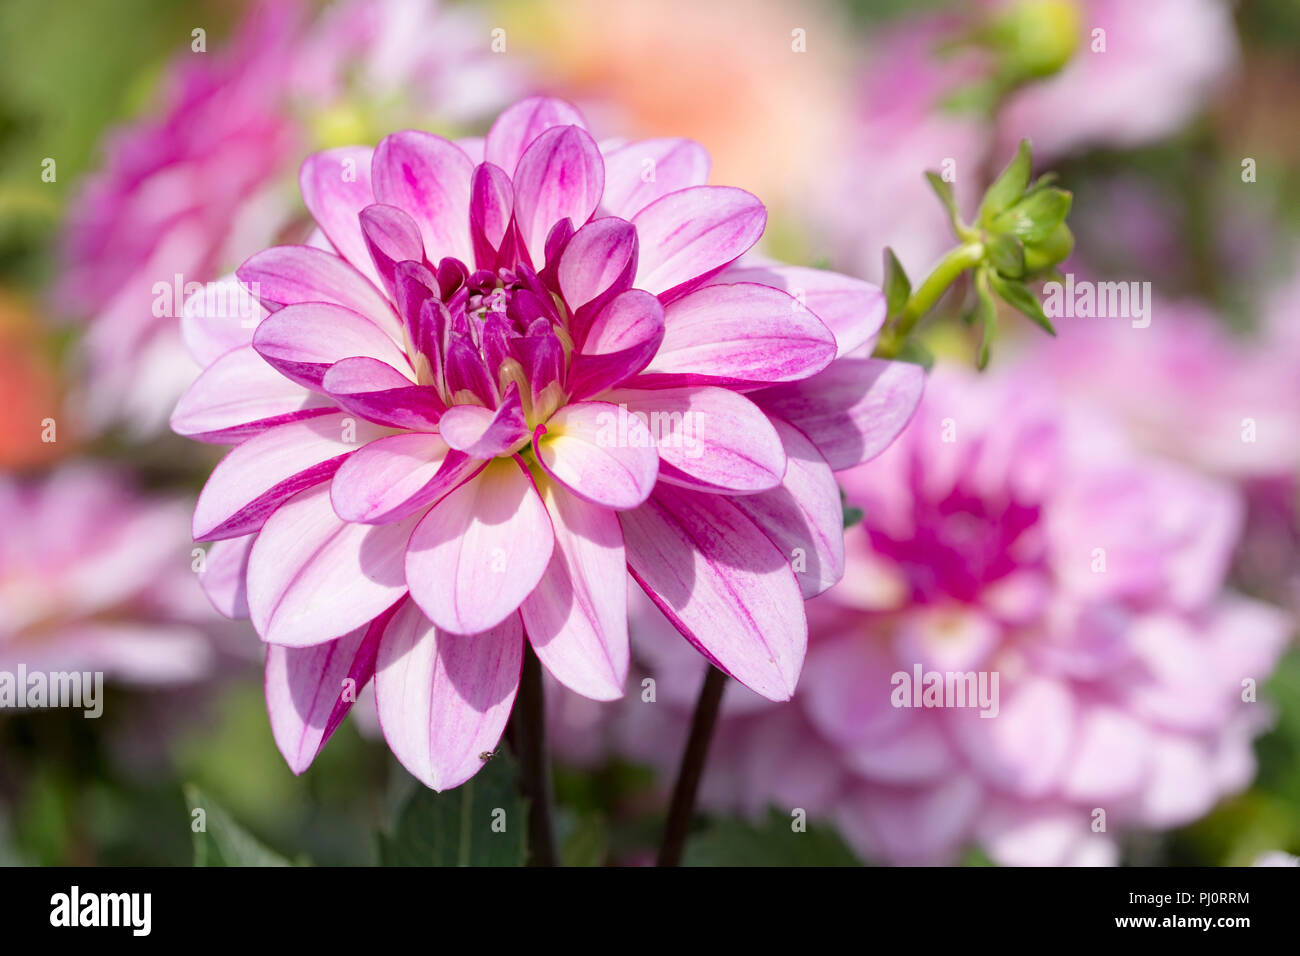 Close-up of the lilac flowers of dahlia 'Seduction' - Stock Image